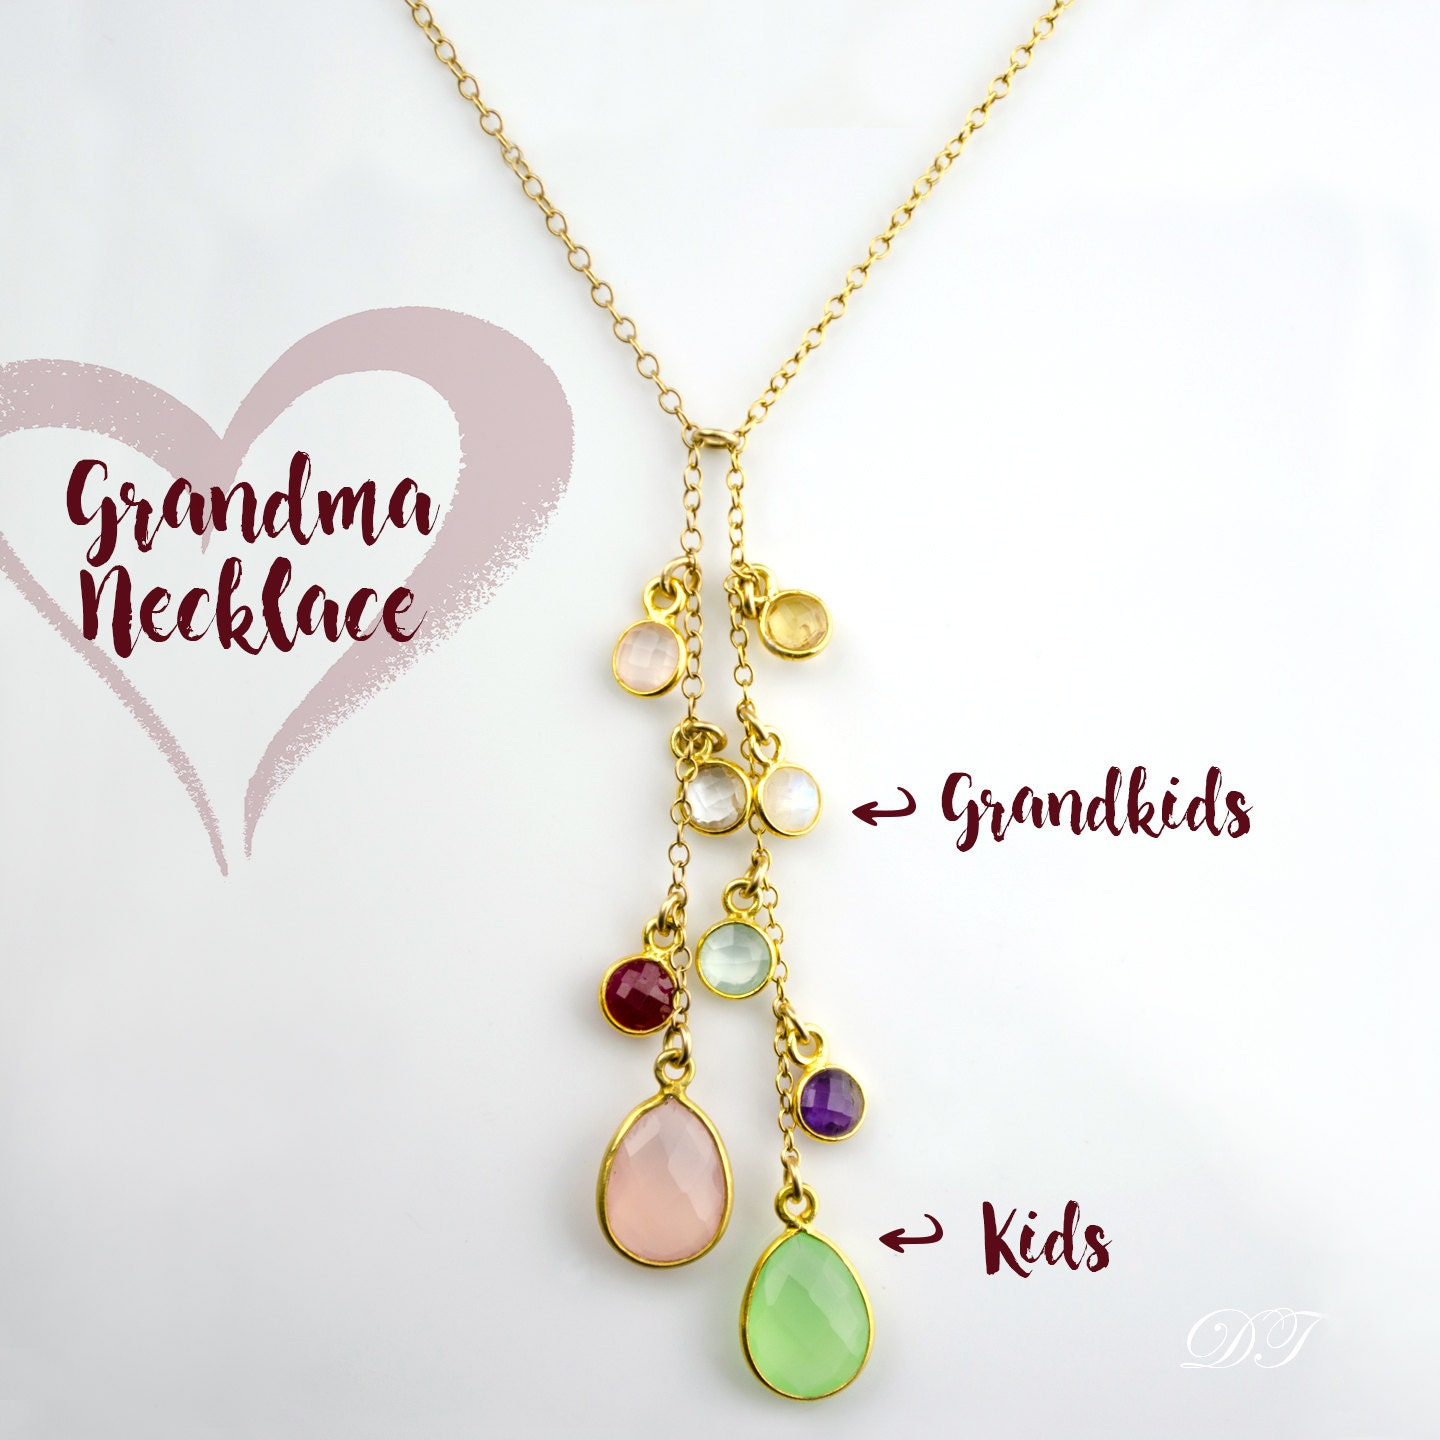 birthstones grandma necklace grandmother heart birthstone love necklaces will inexpensive grandkid under with gold